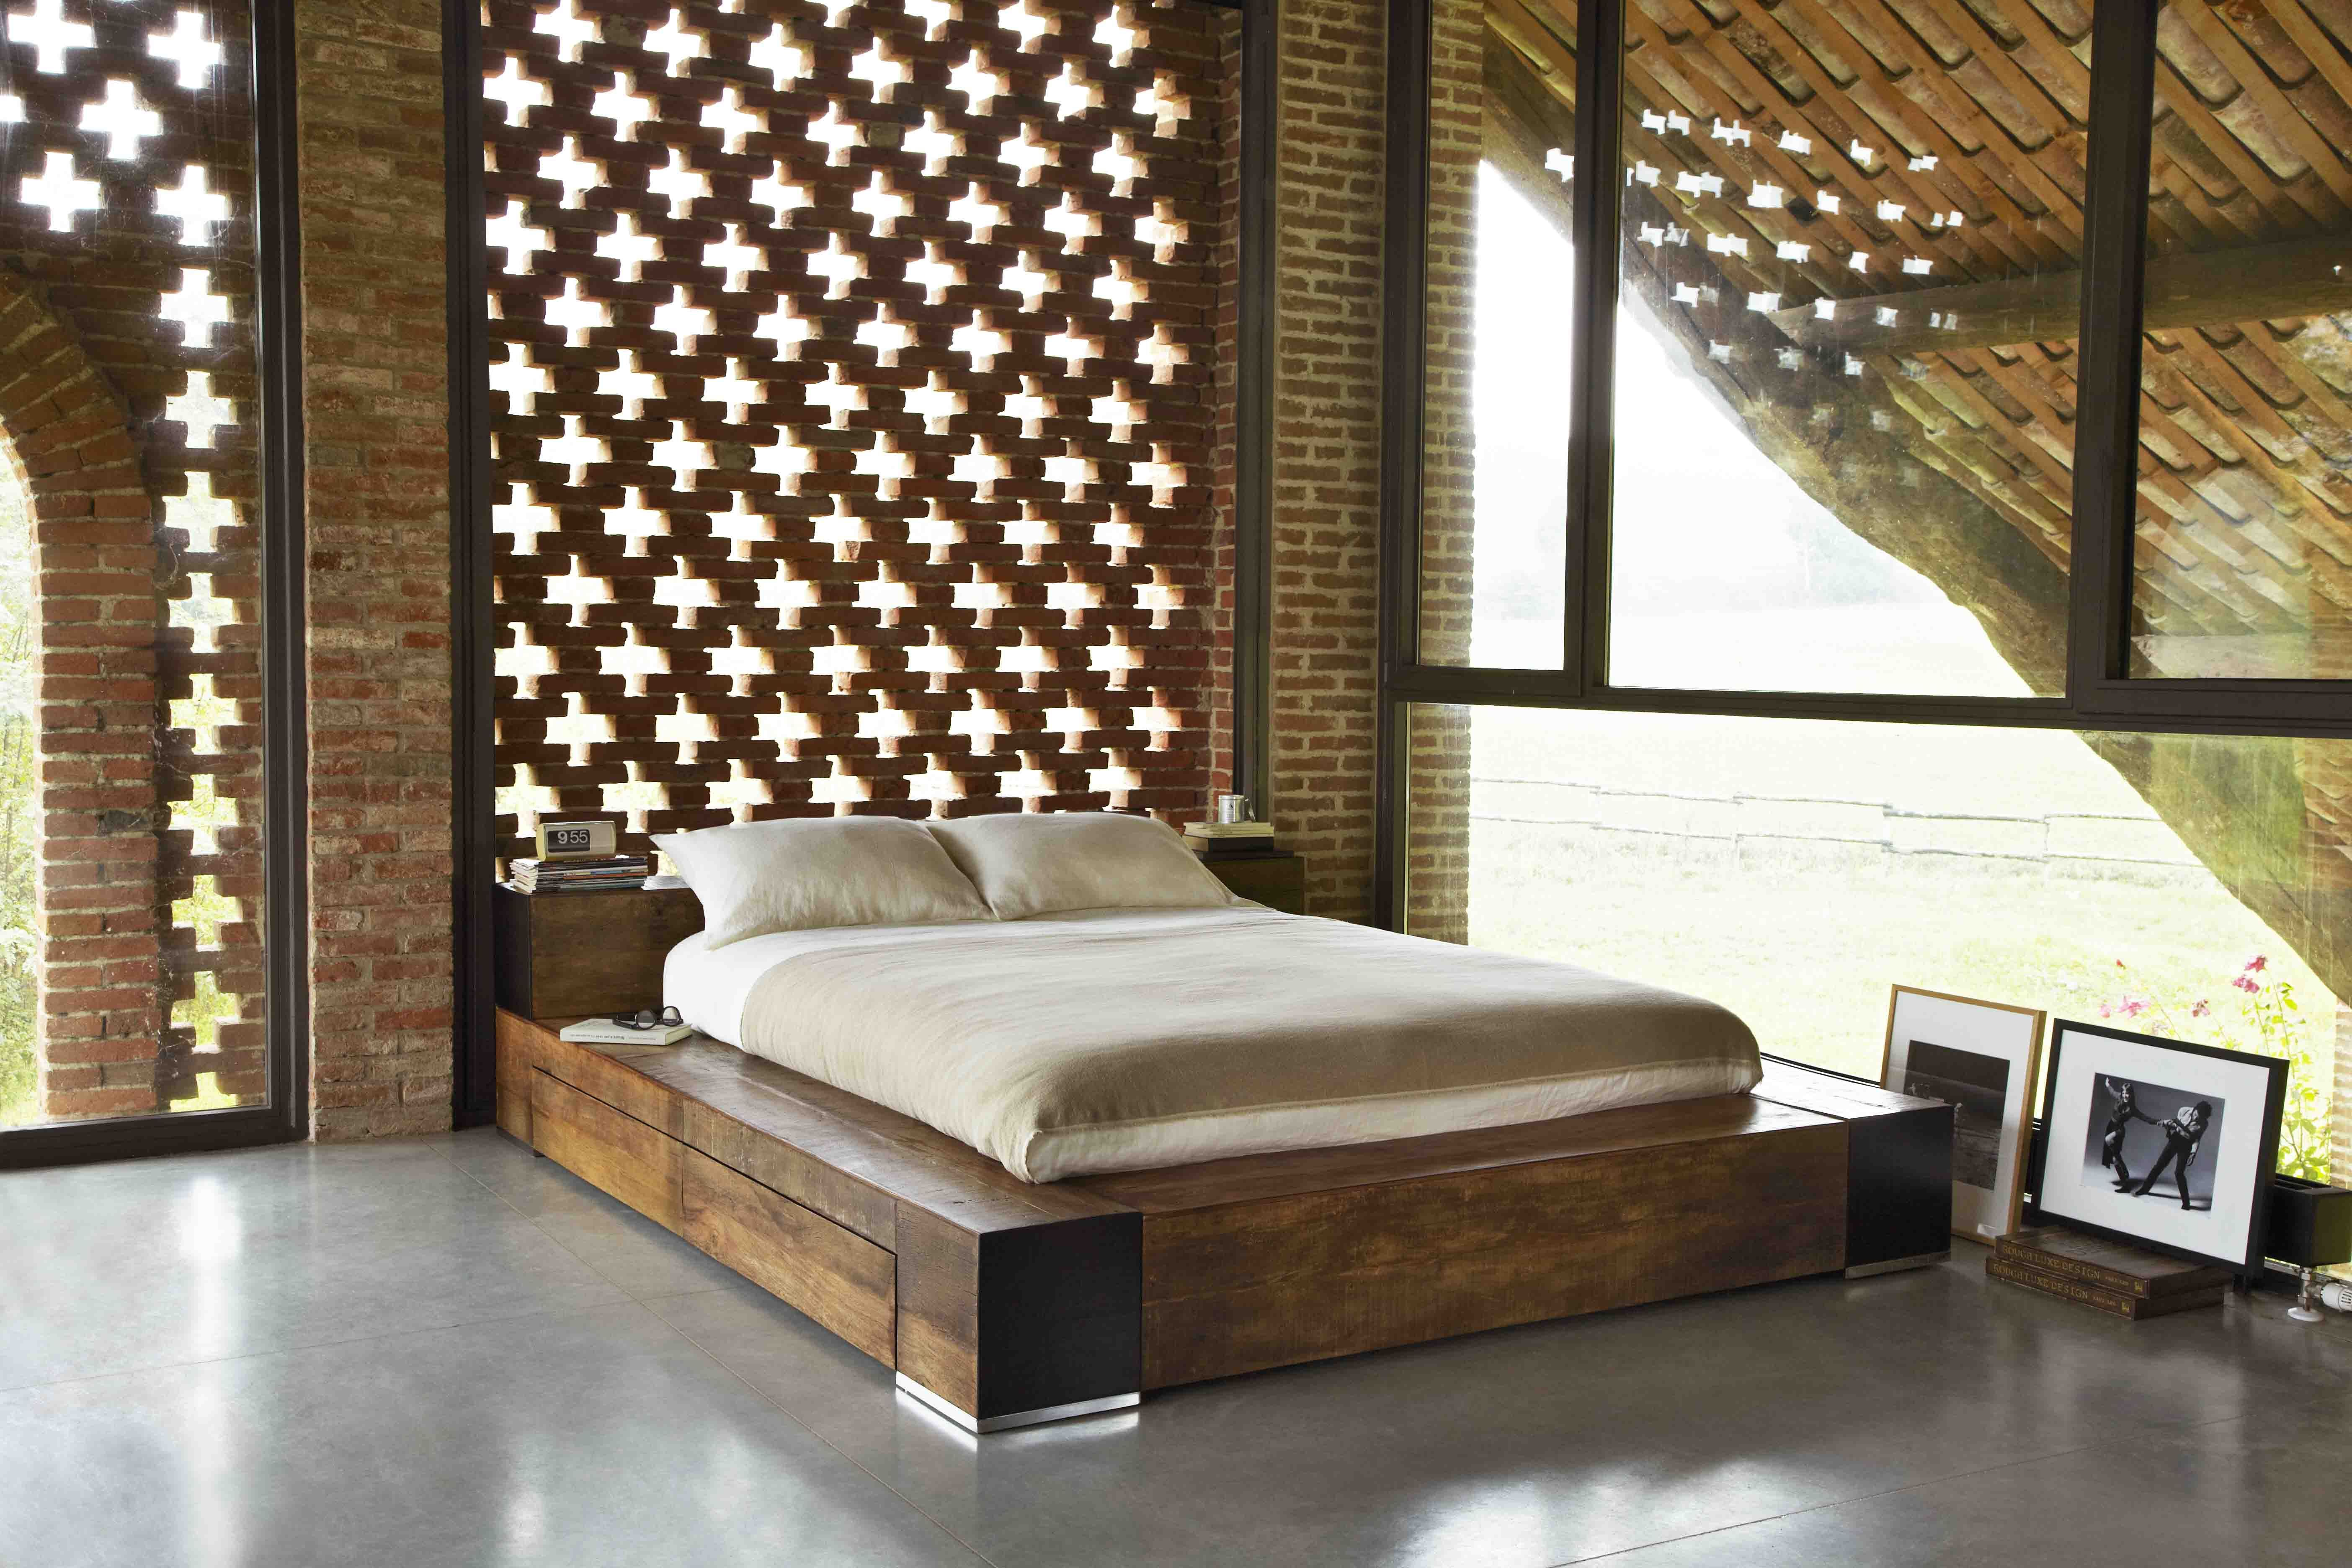 Edge Bed Italy photo shoot Luxury wooden bed, Bed